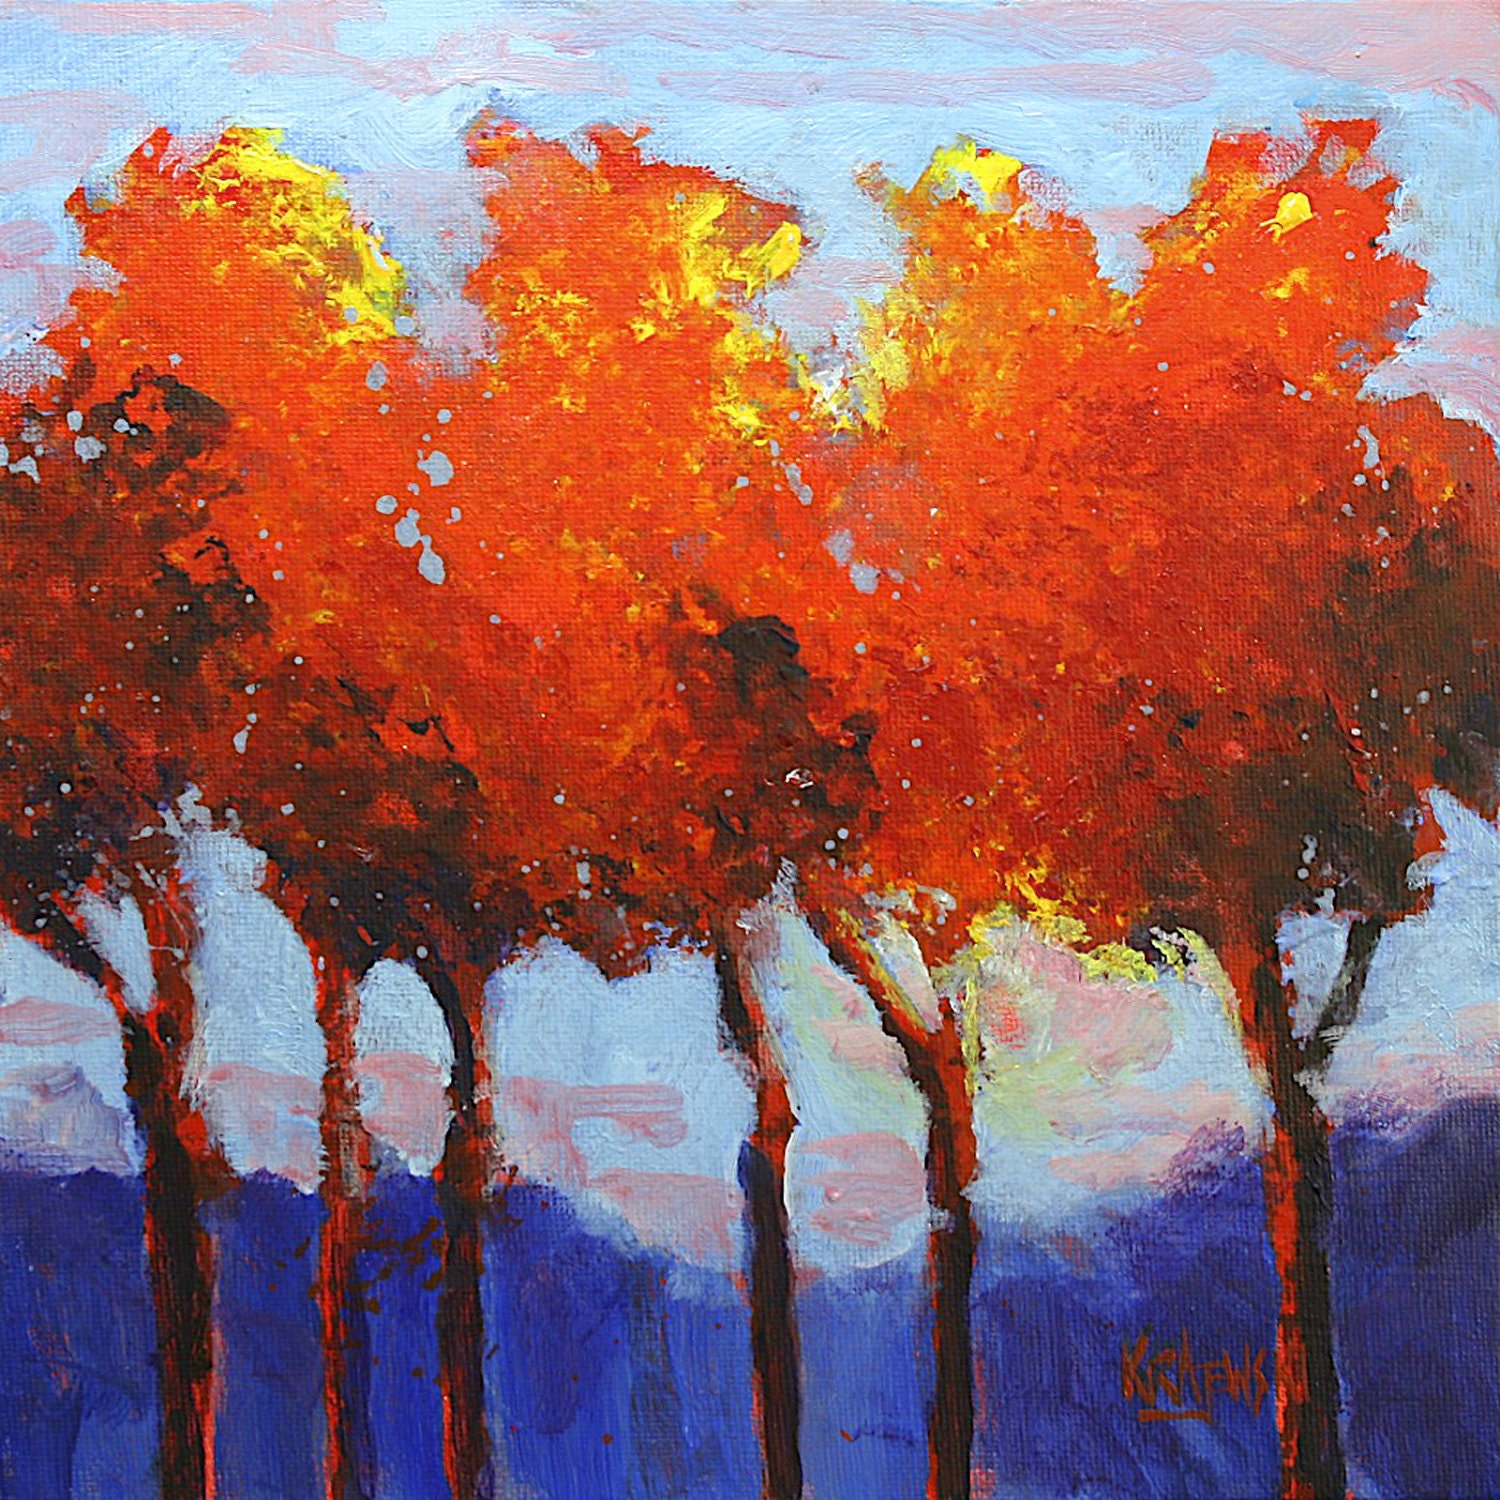 Autumn trees original acrylic painting 10x10 for Autumn tree painting